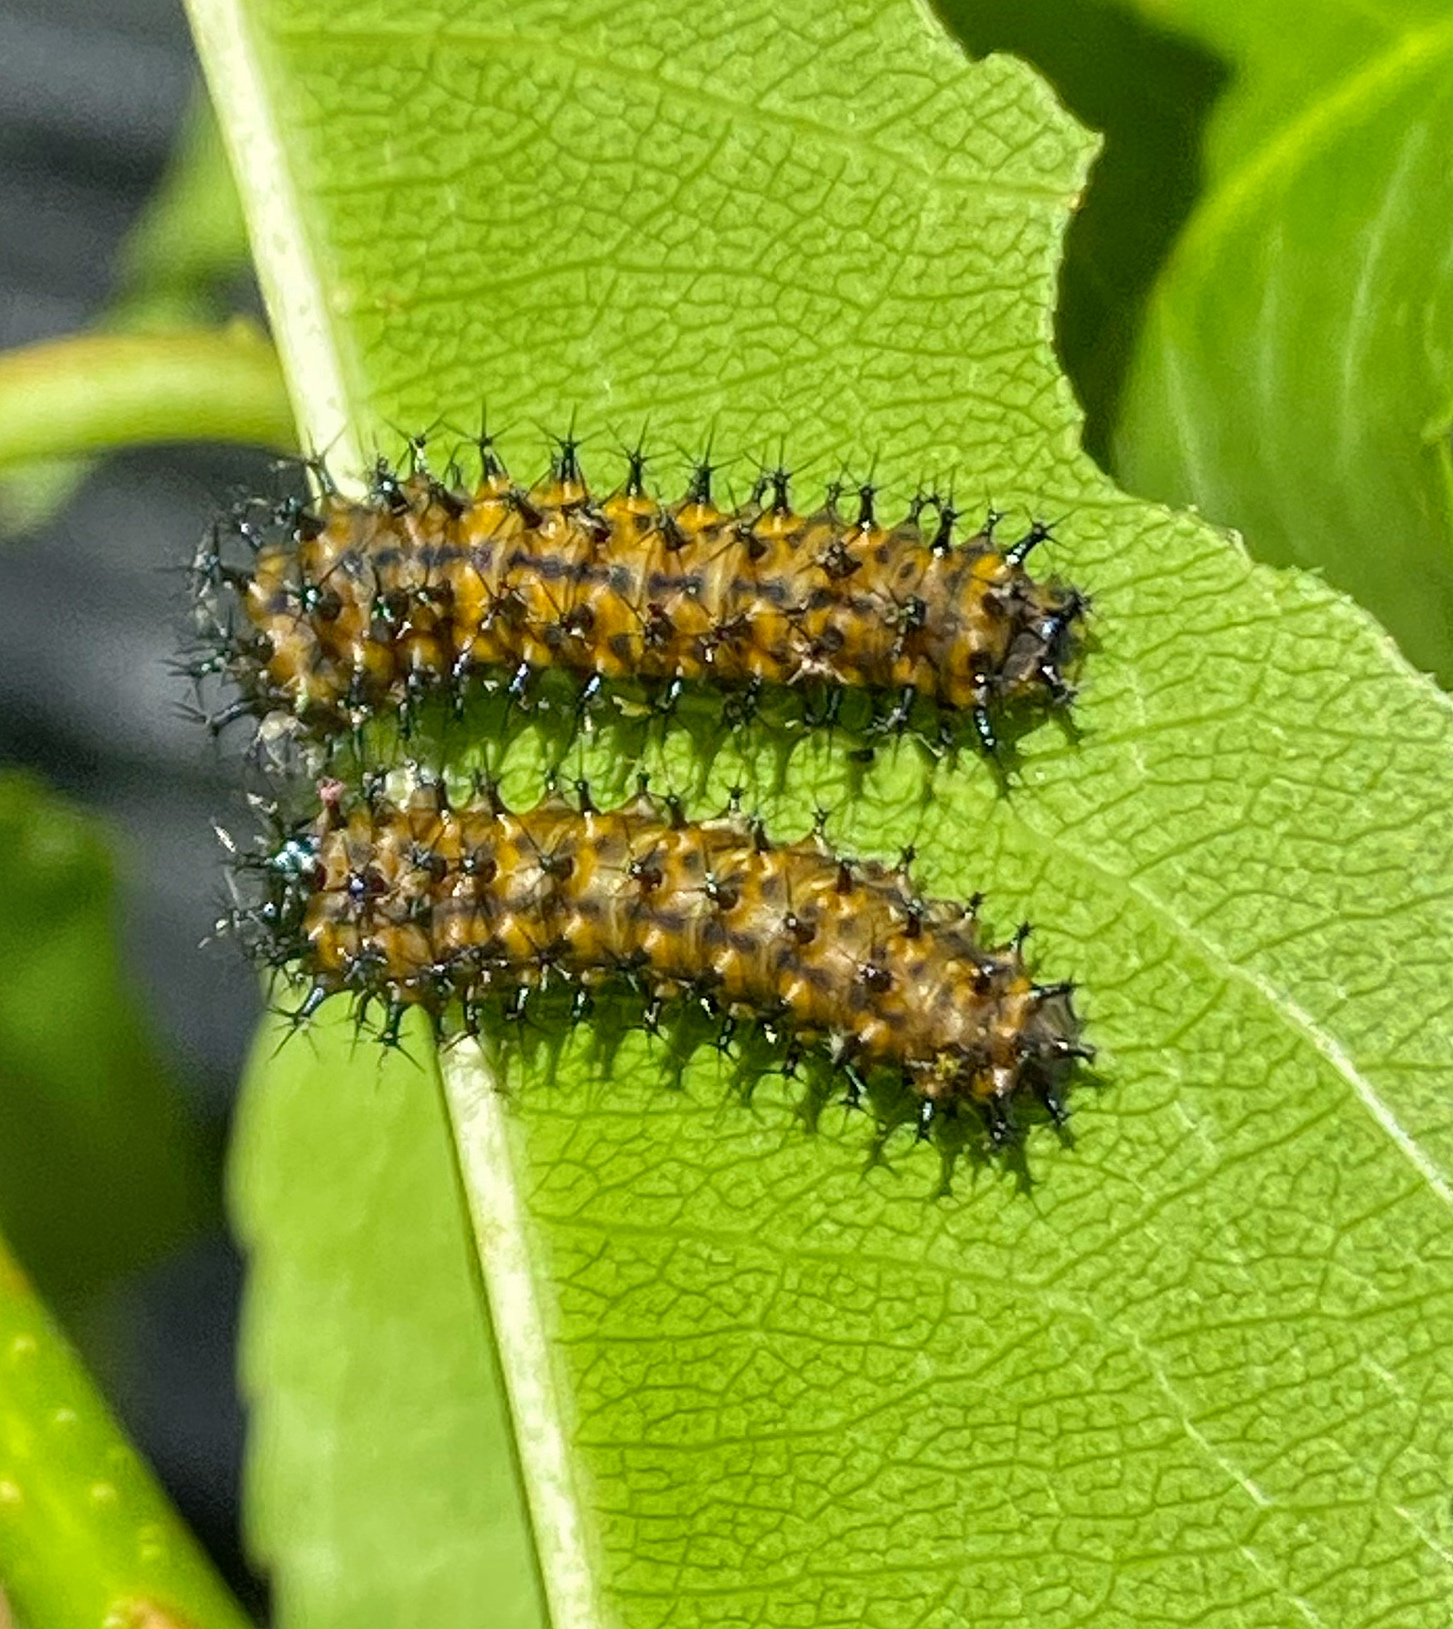 Cecropia larvae second instar